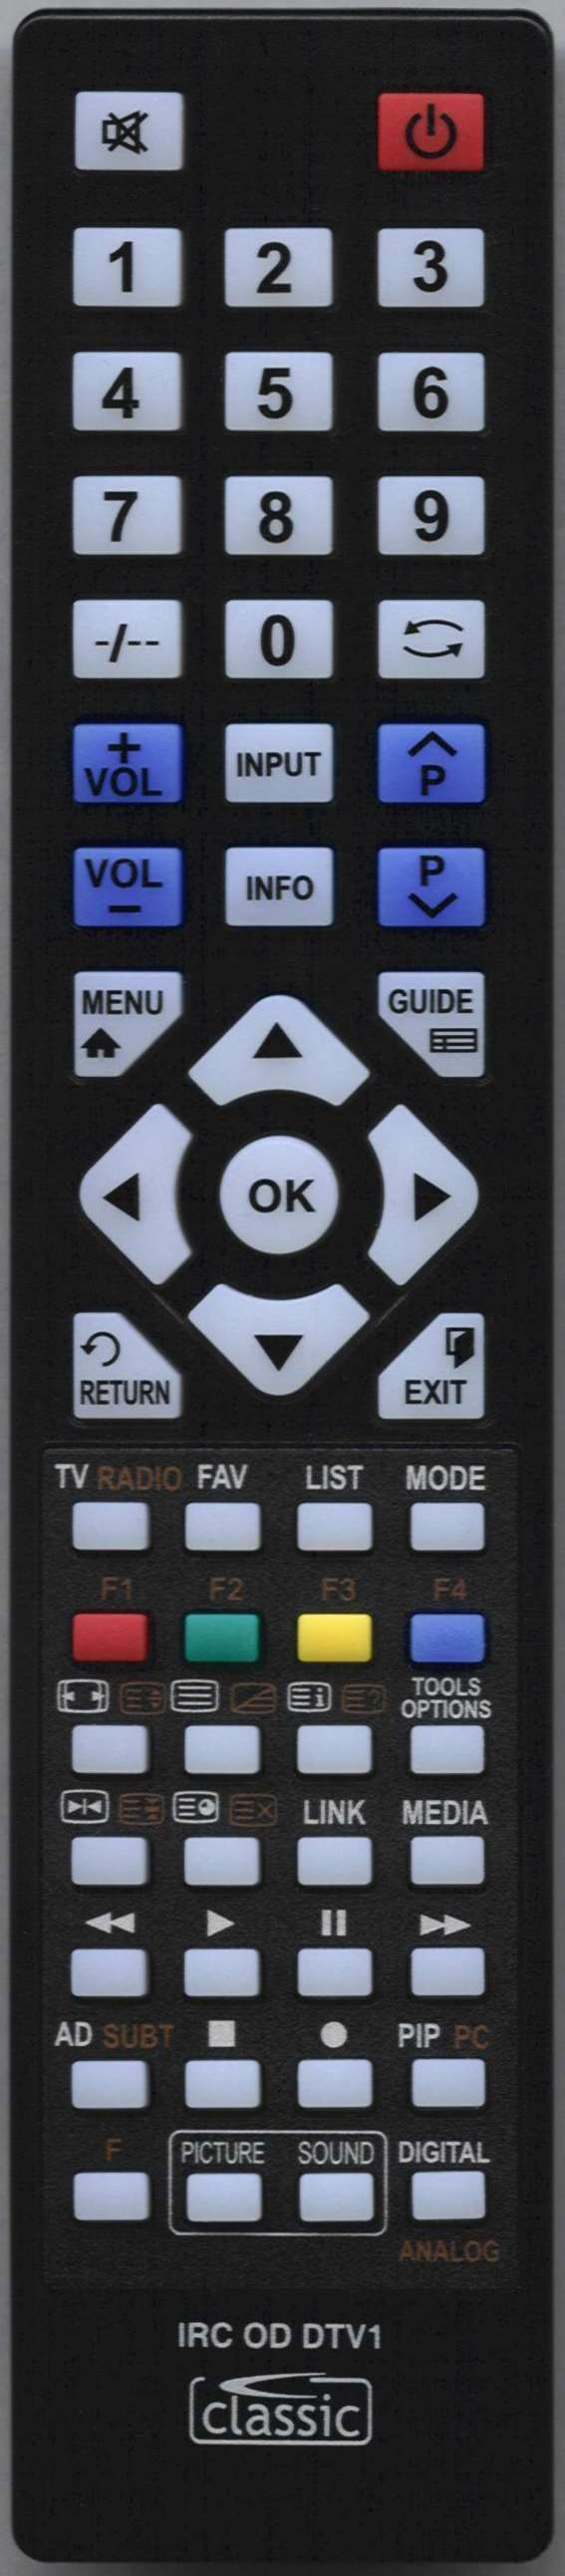 SAMSUNG AA59-00478A Replacement Remote Control